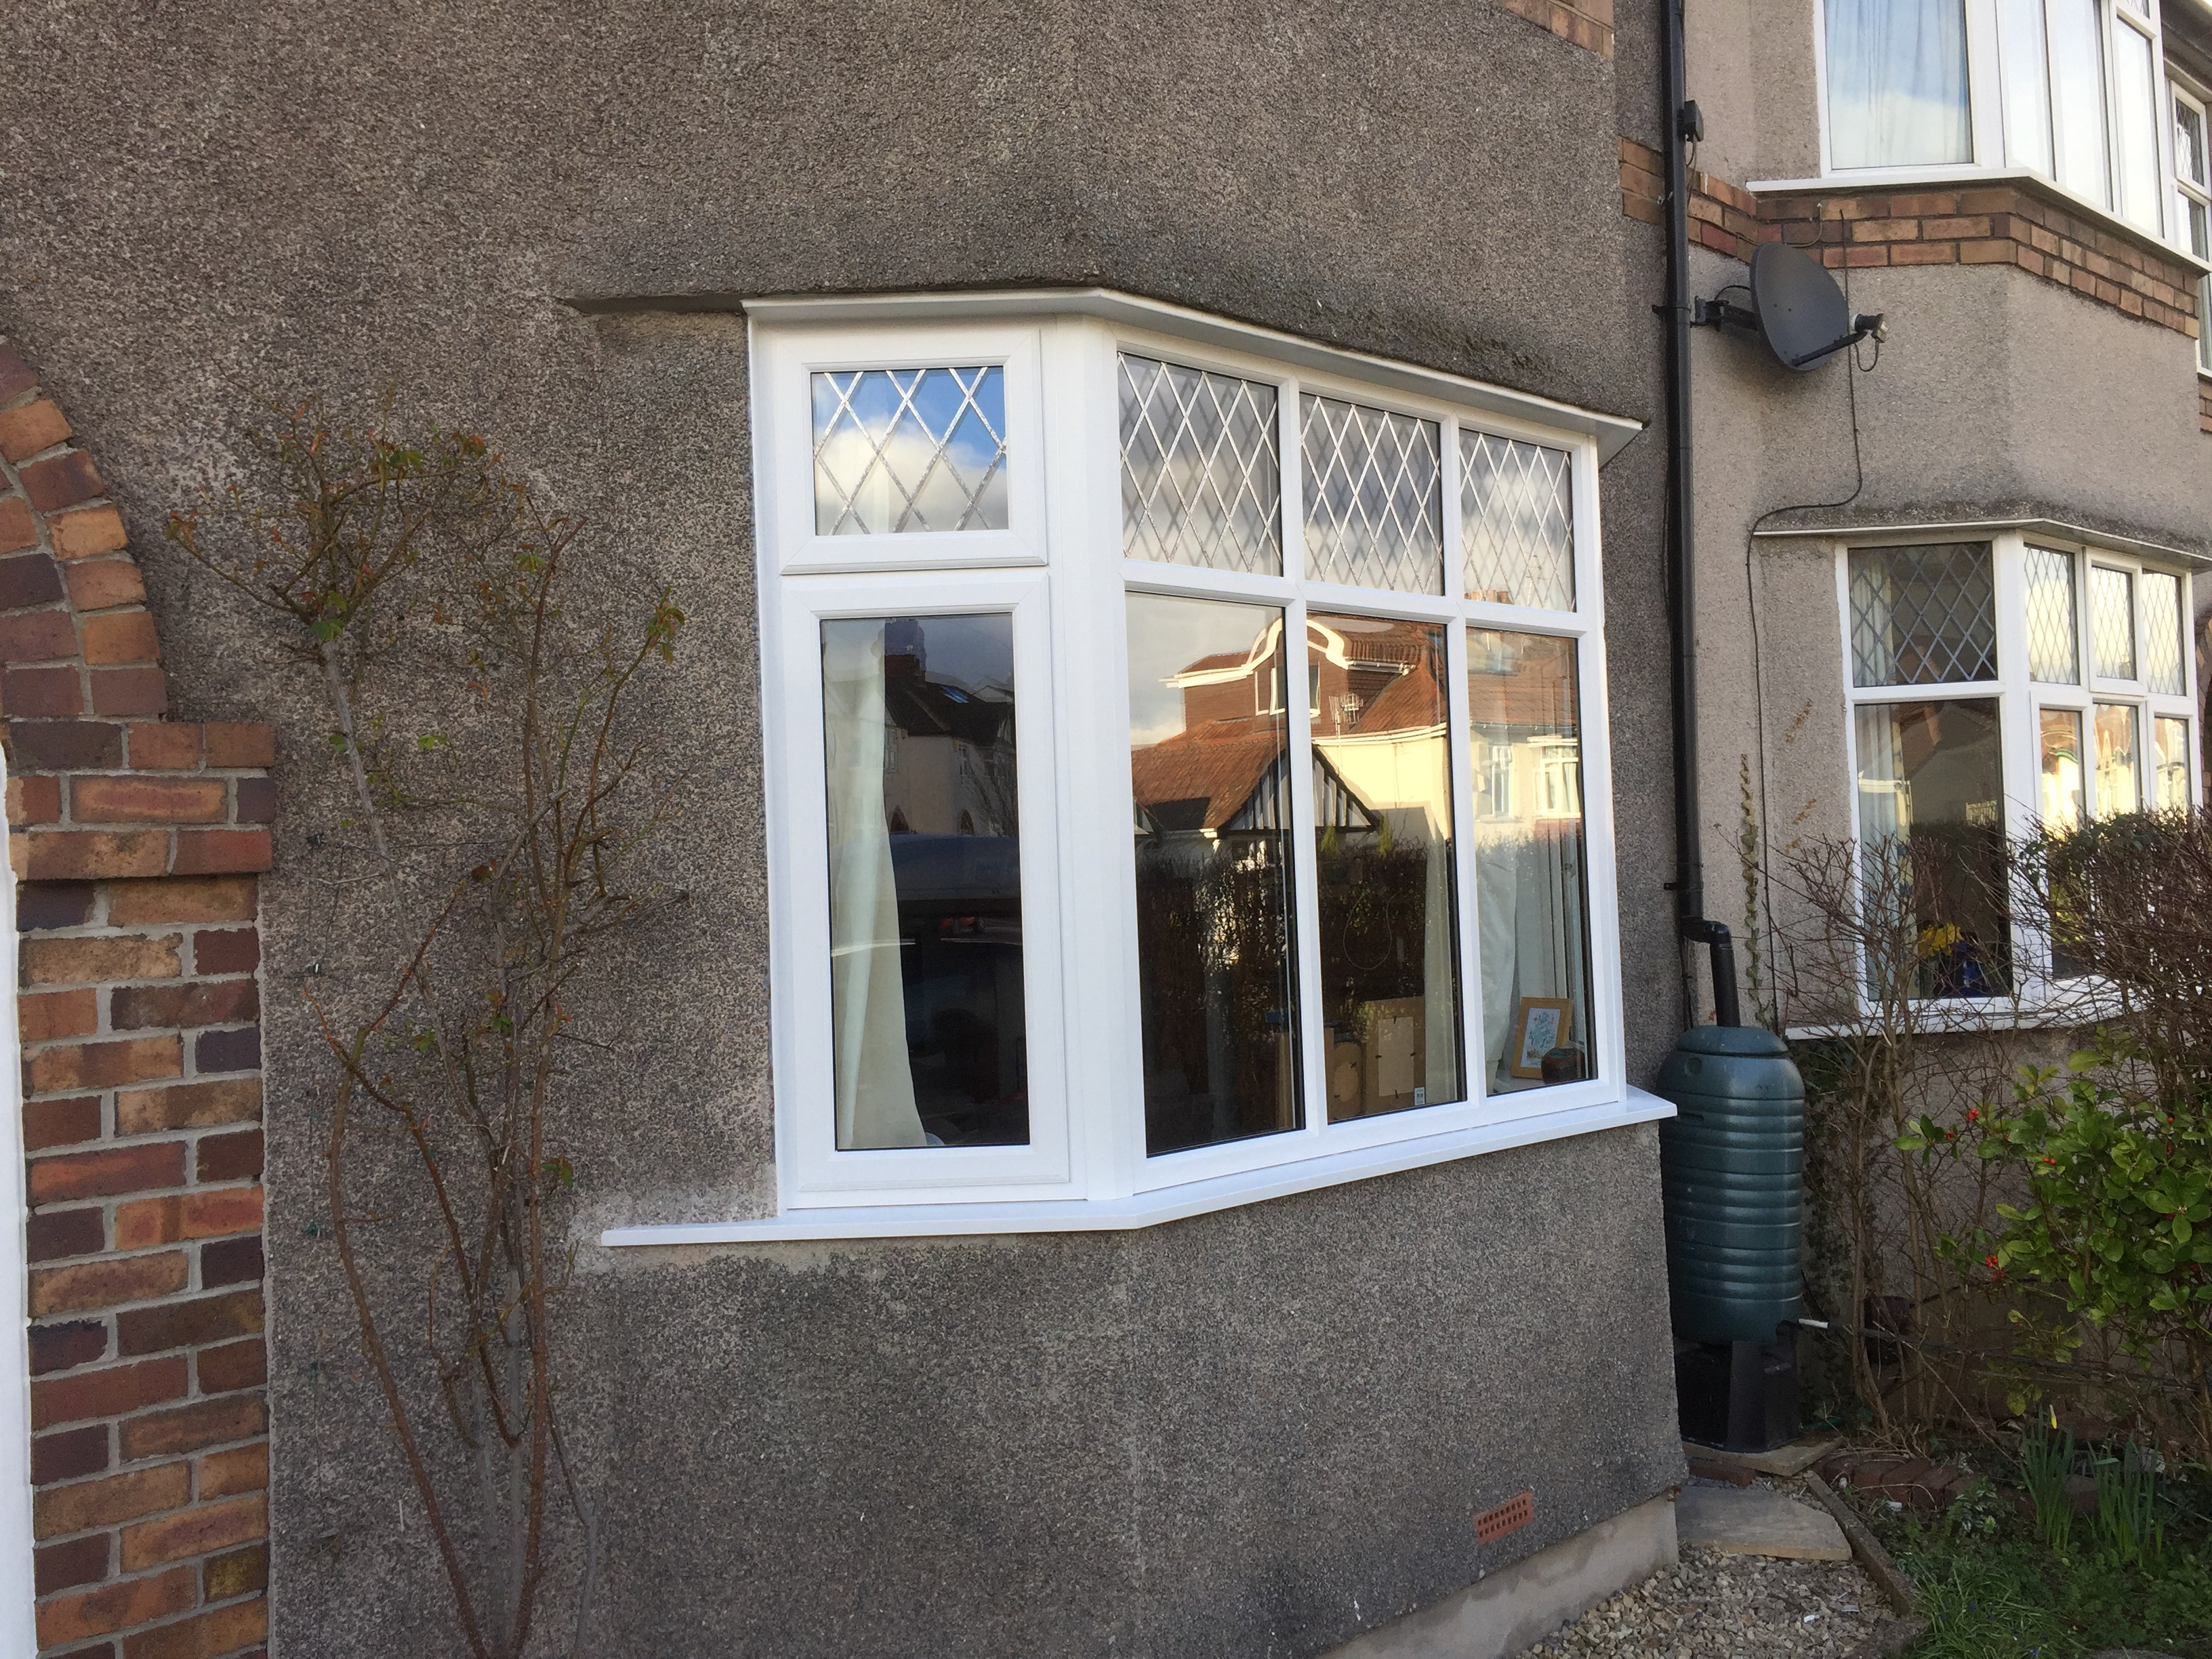 New bay windows x 2, double glazed